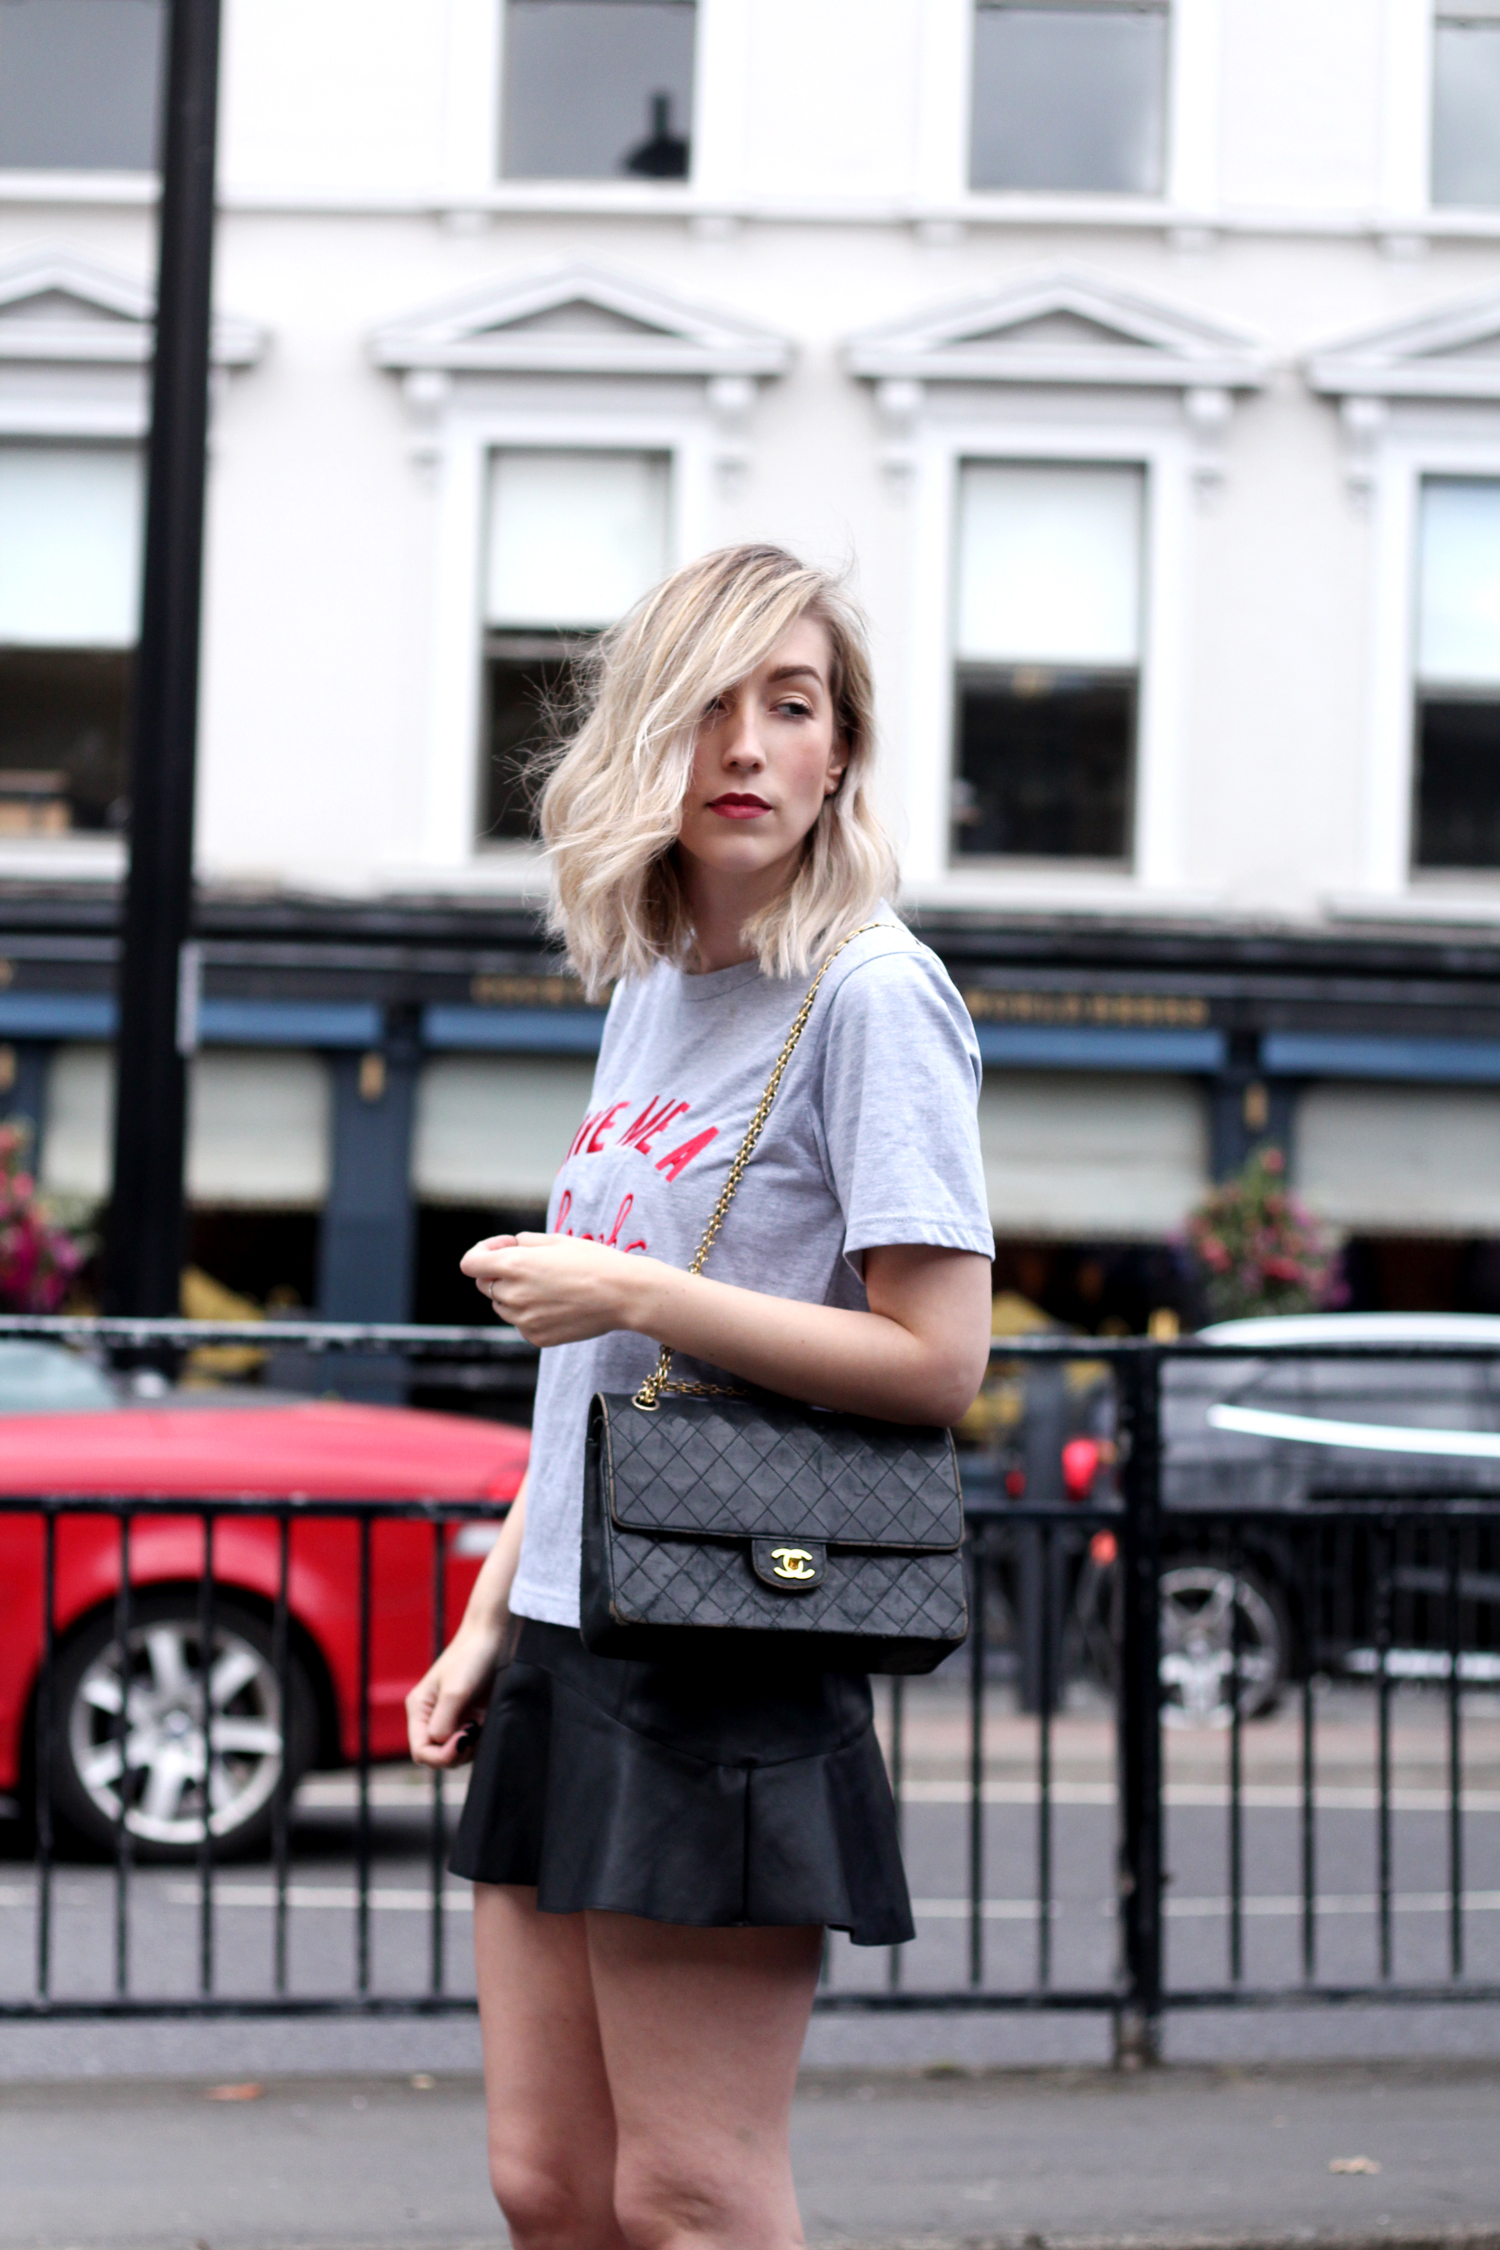 pretty-little-thing-give-me-a-break-slogan-tshirt-vintage-chanel-4